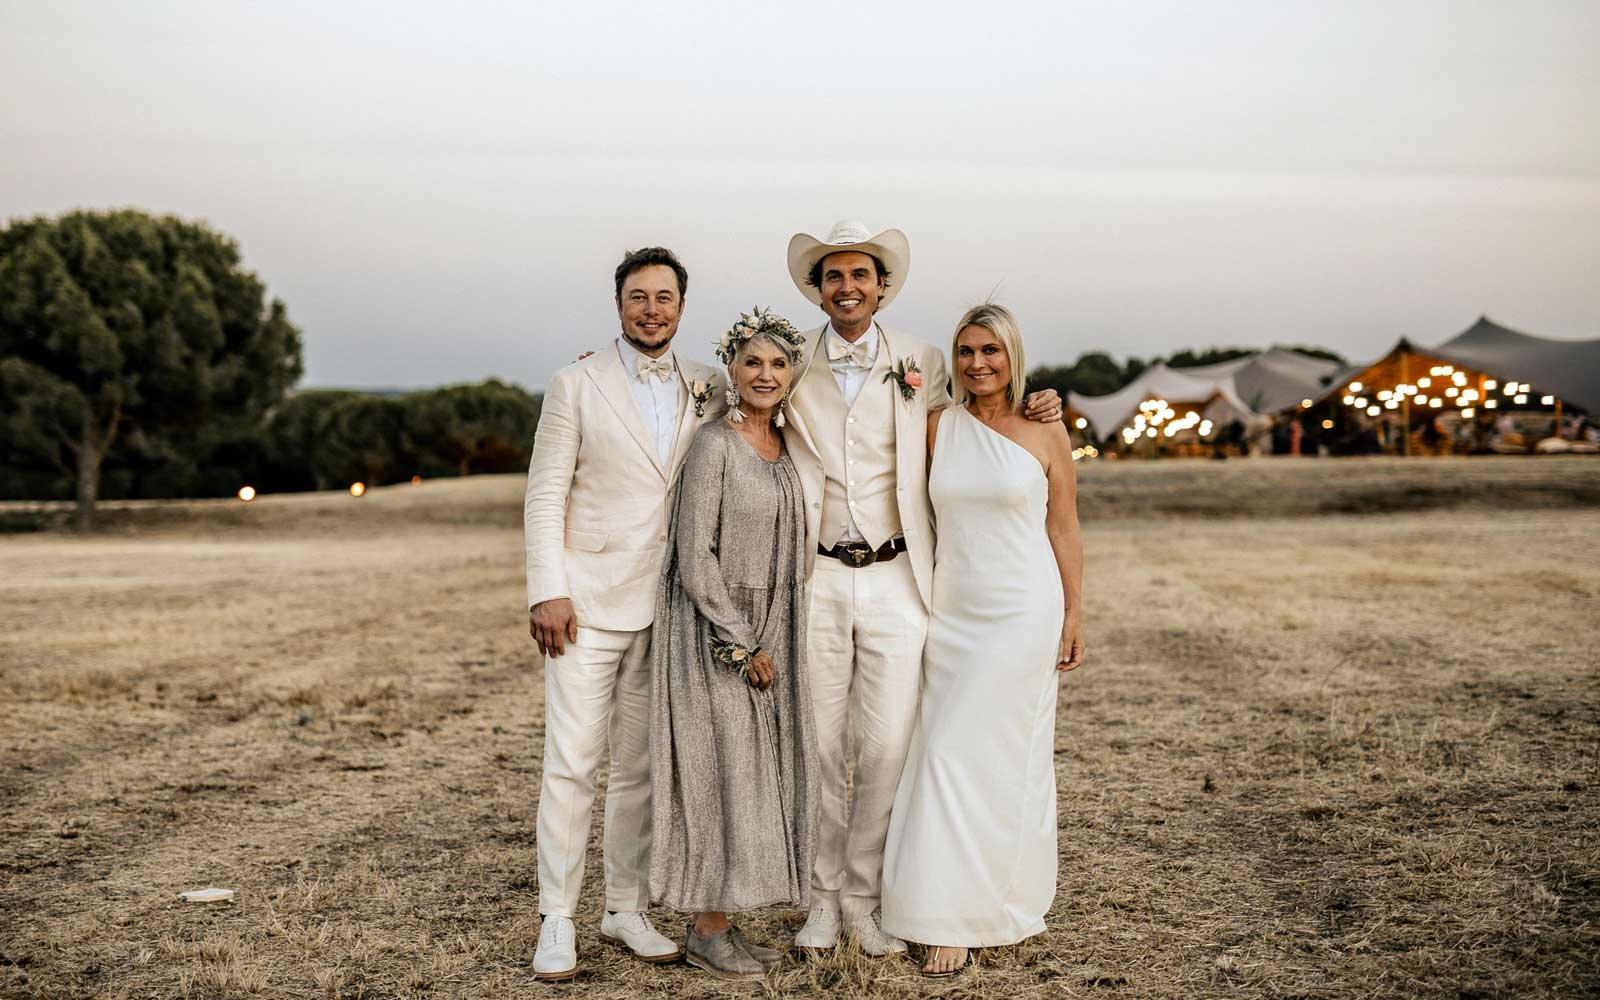 Maye Musk, Elon Musk, and family at a wedding